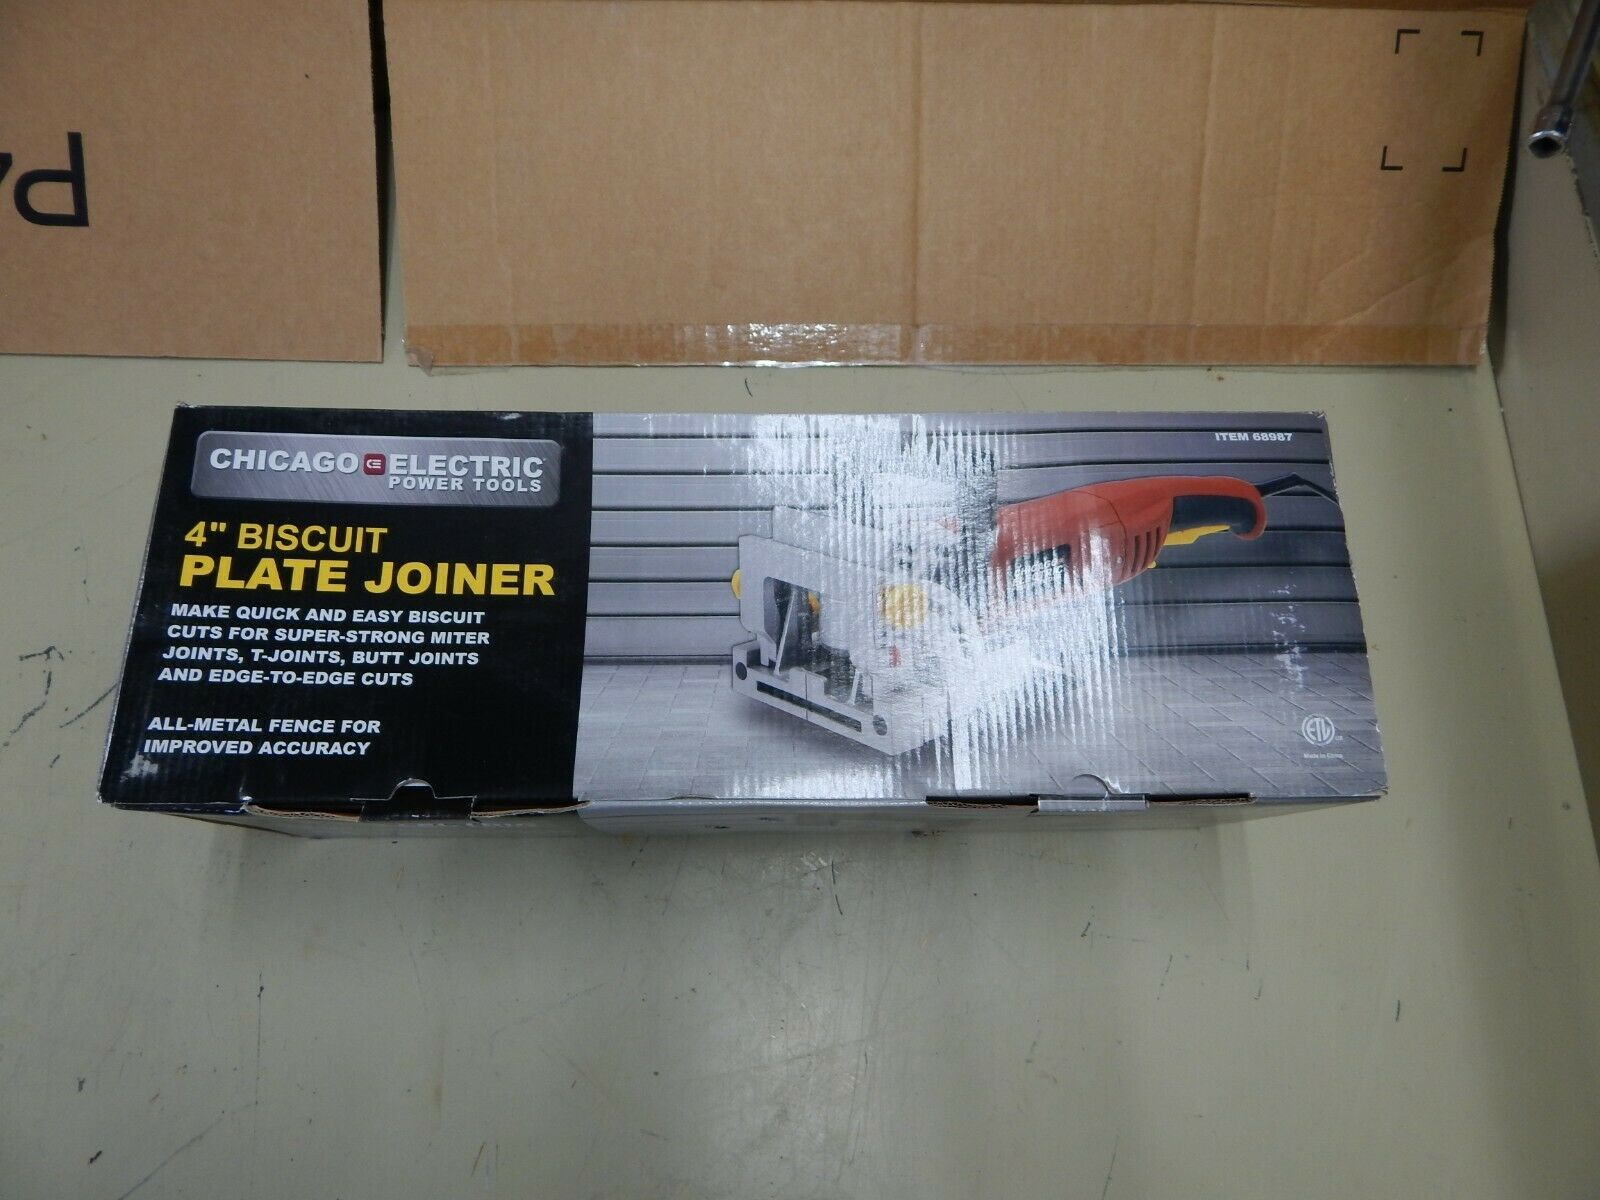 4in. Biscuit Plate Joiner Make quick and easy biscuit cuts powerful plate joiner - $84.14